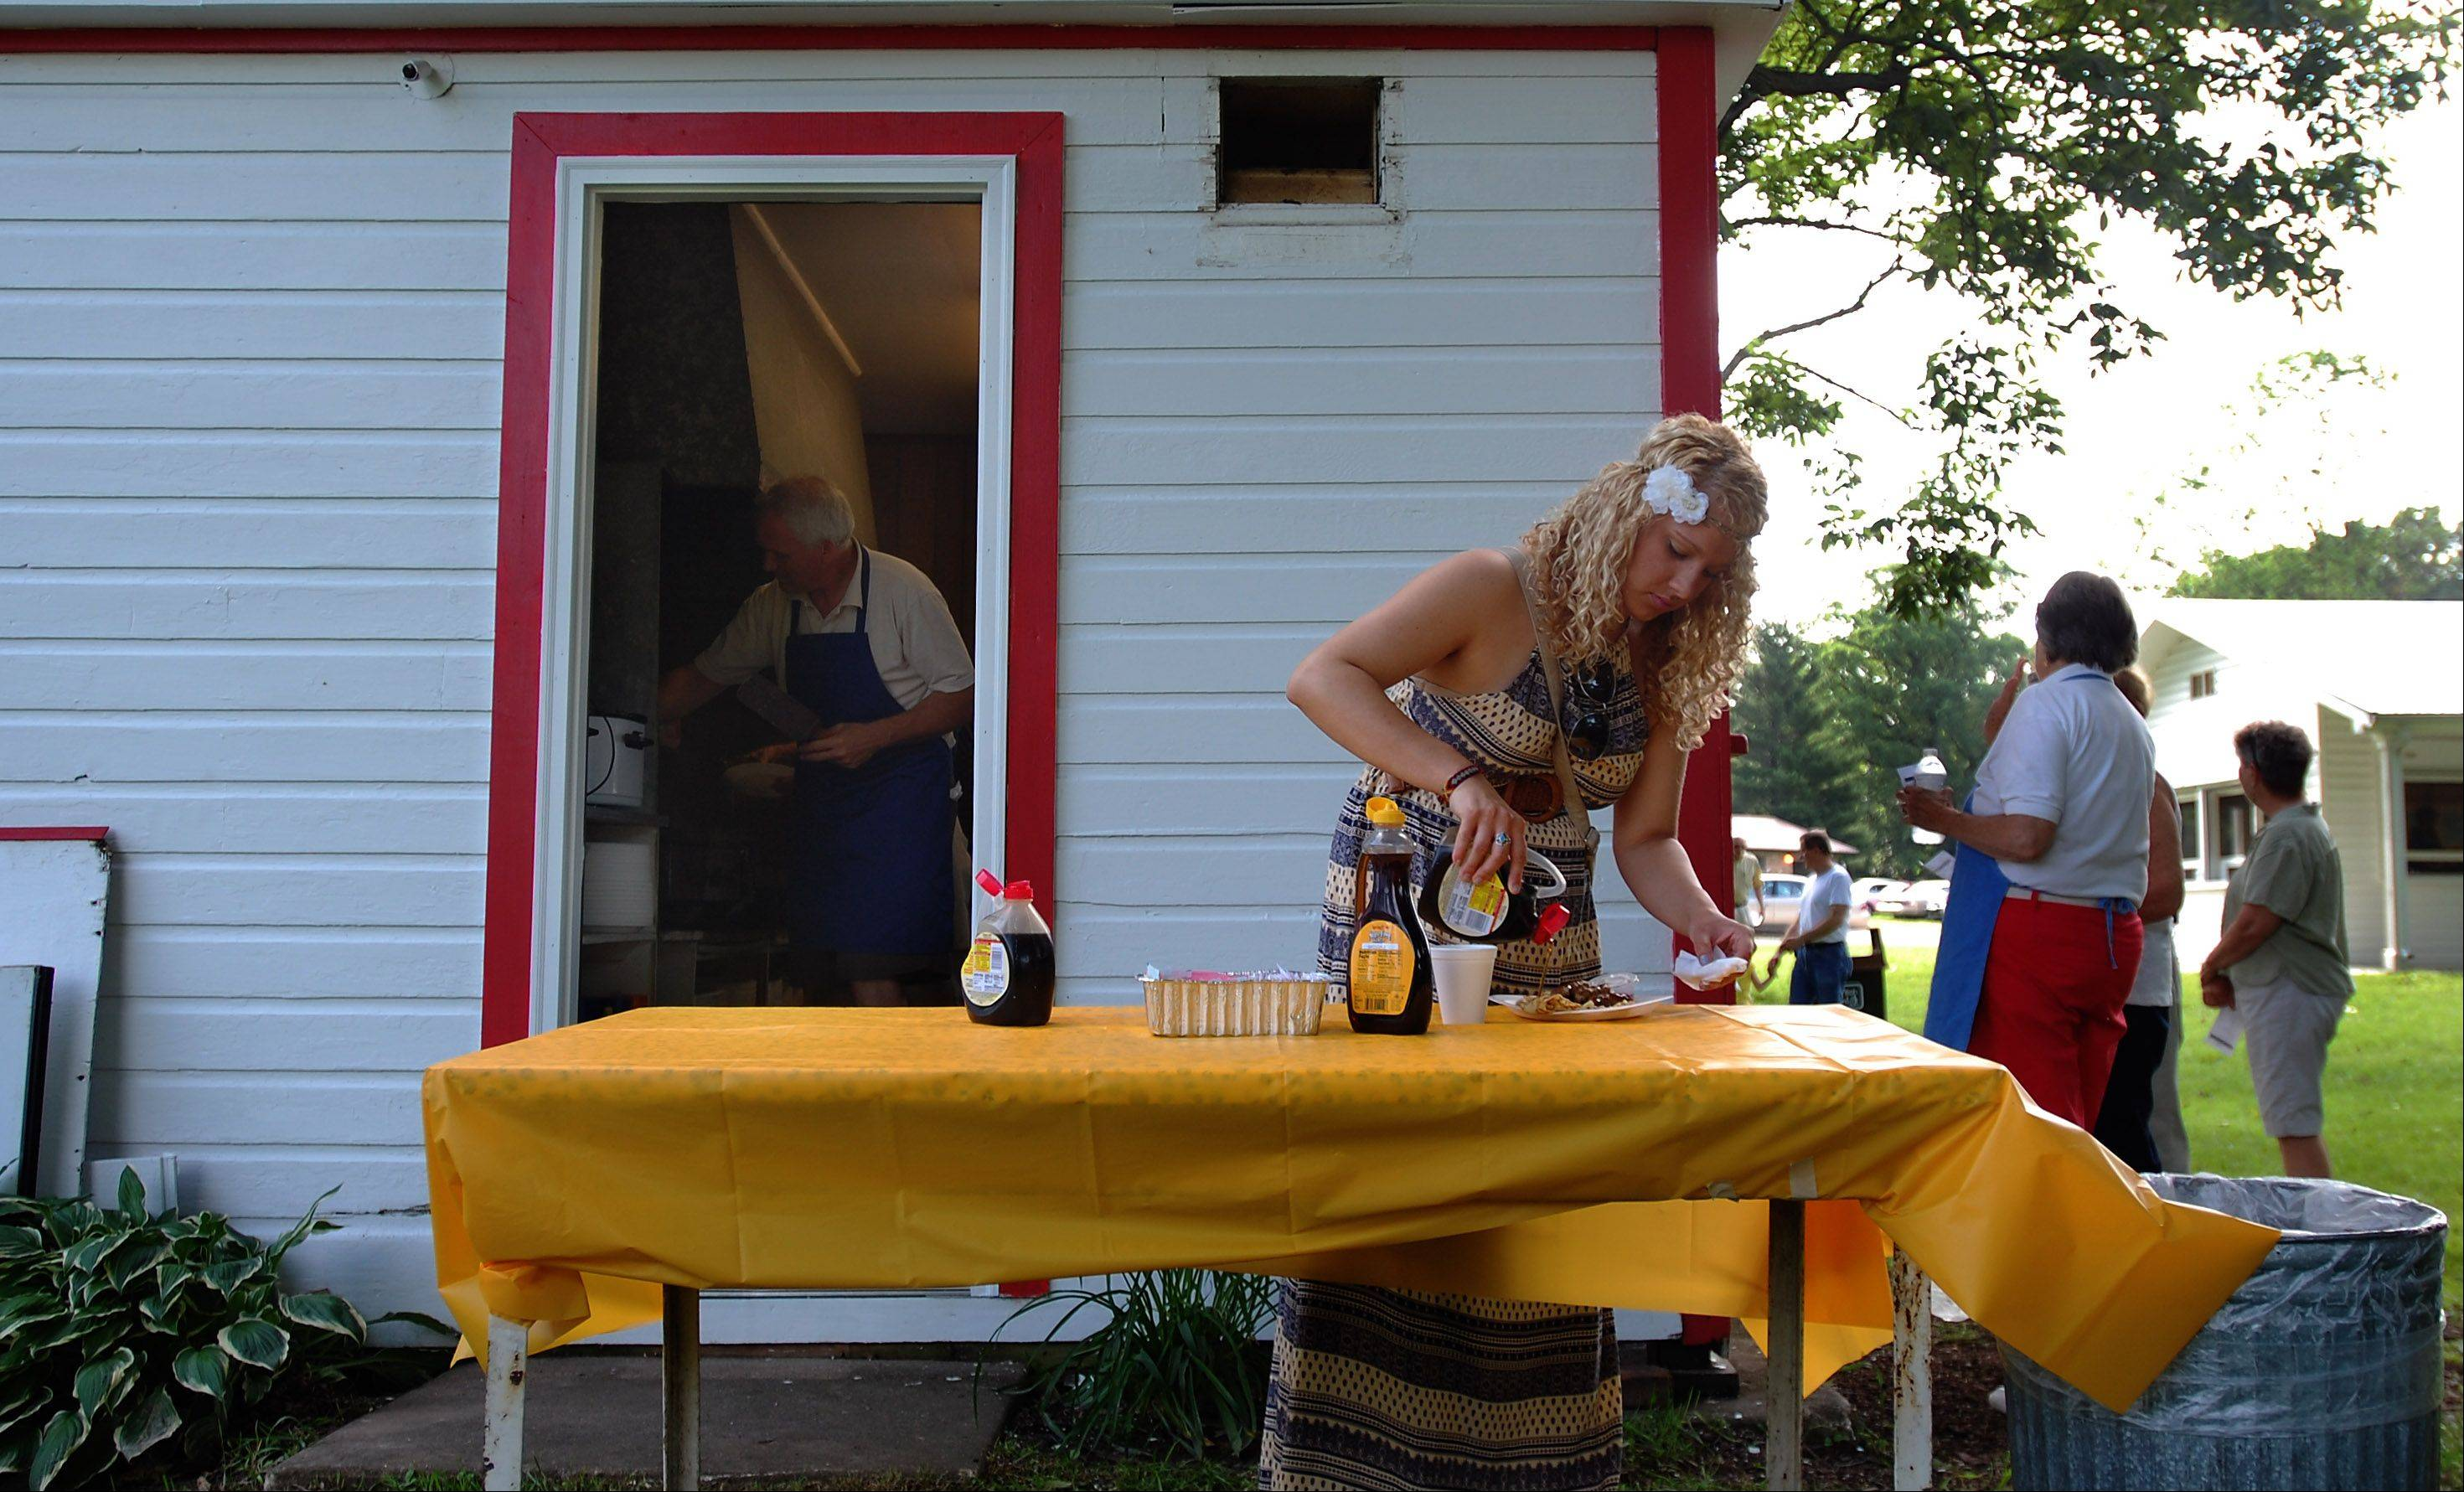 Abra Keup adds syrup to her Swedish pancakes with lingonberries at the 103rd annual Swedish Midsommar Festival Sunday at Good Templar Park in Geneva. Abra attended with her dad for Father's Day.